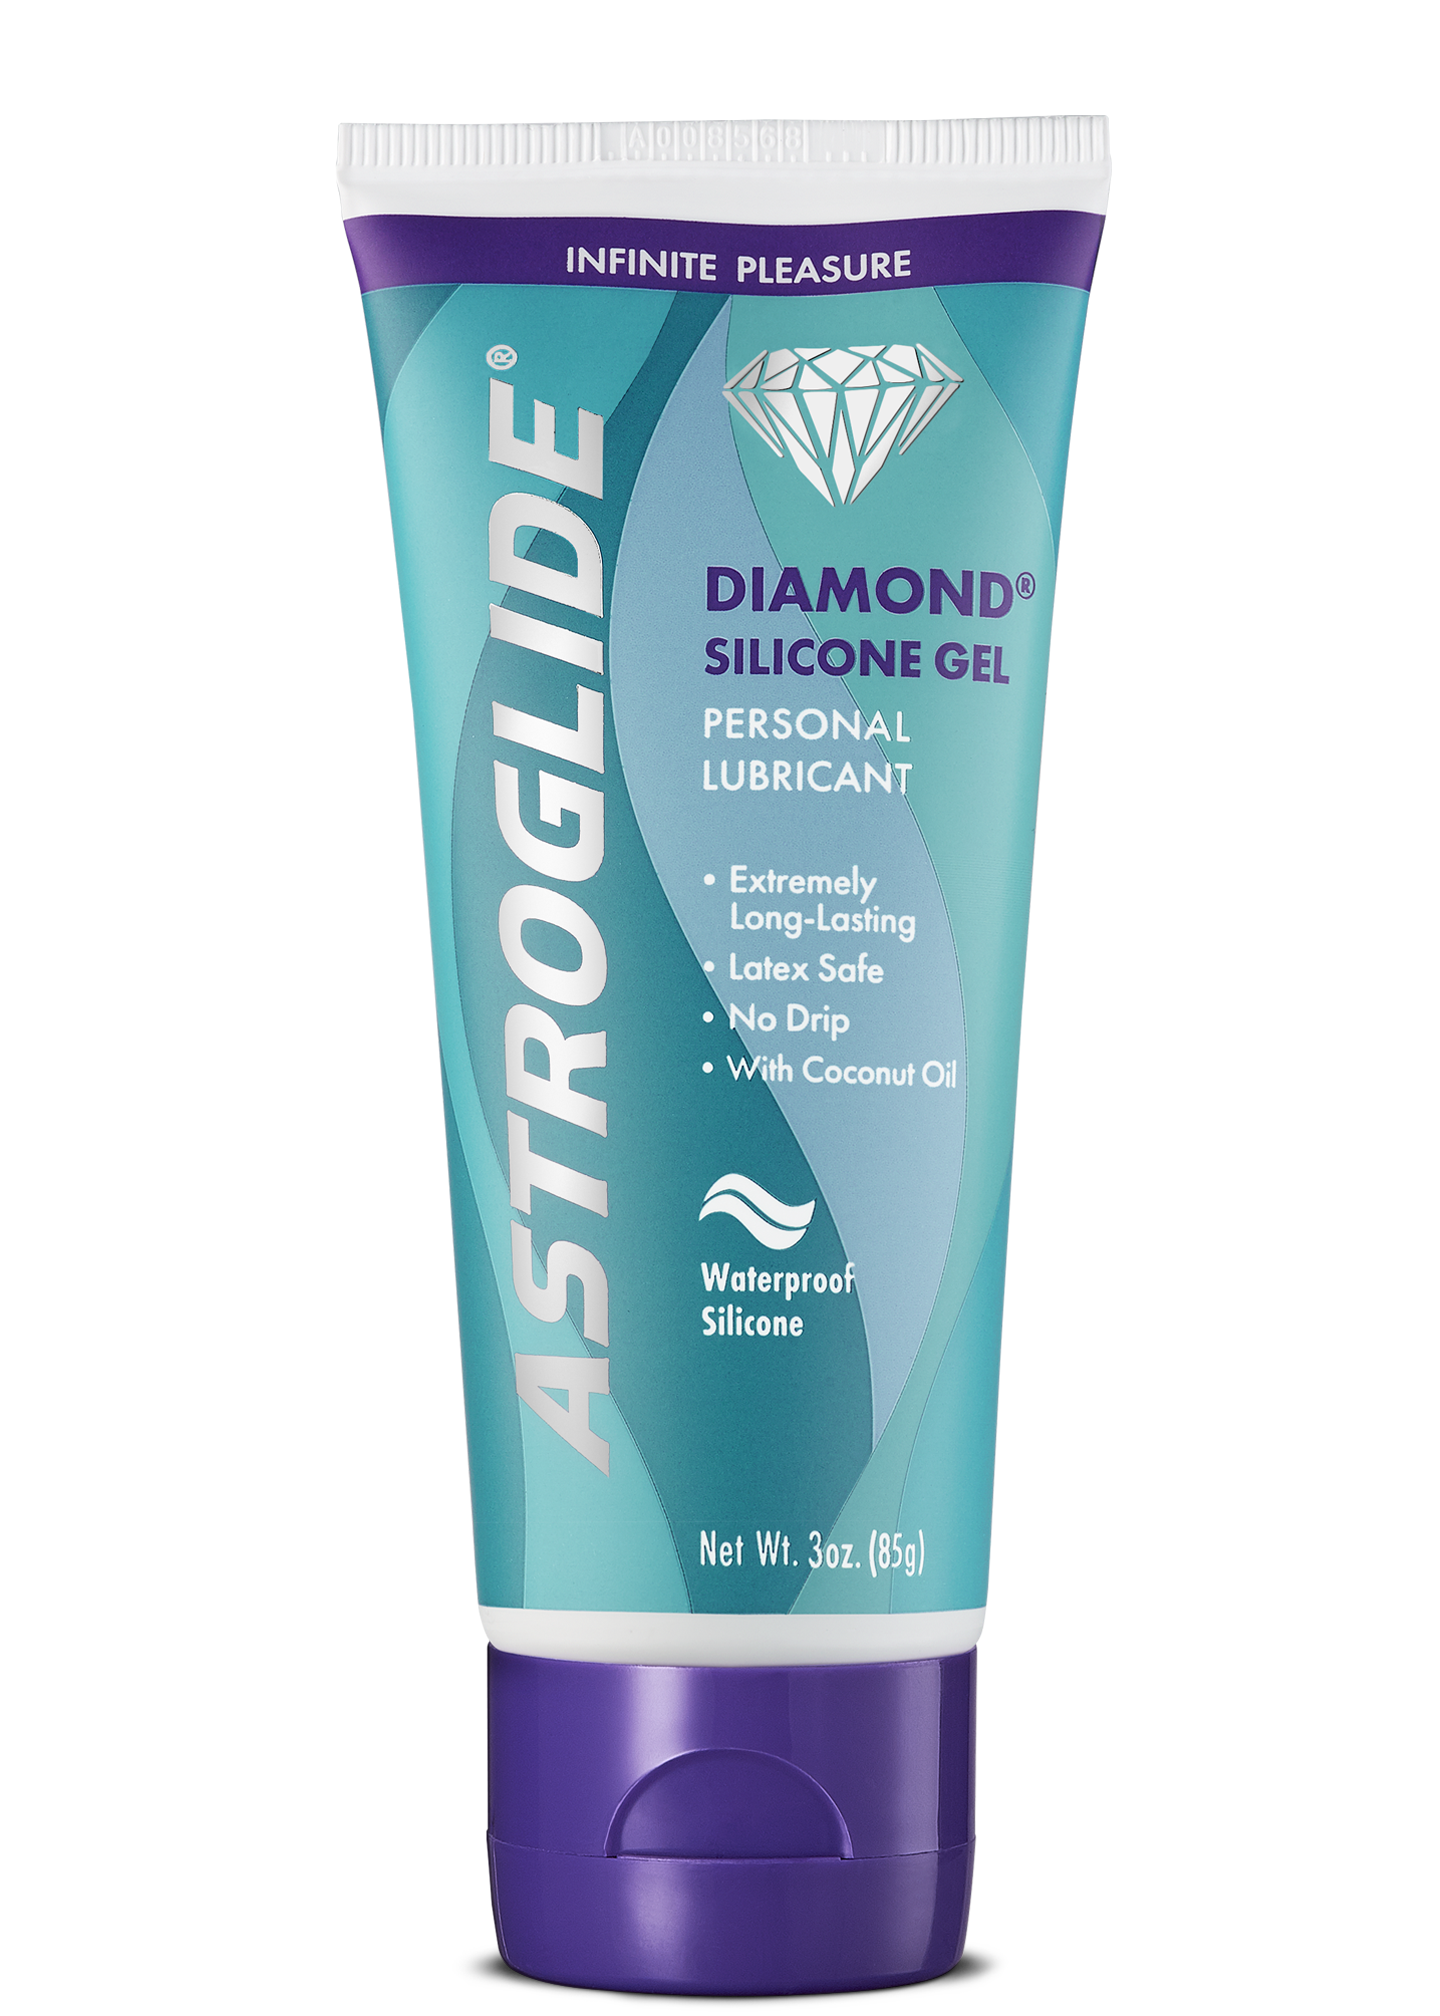 Astroglide Diamond<br/><span>Silicone Gel</span> image